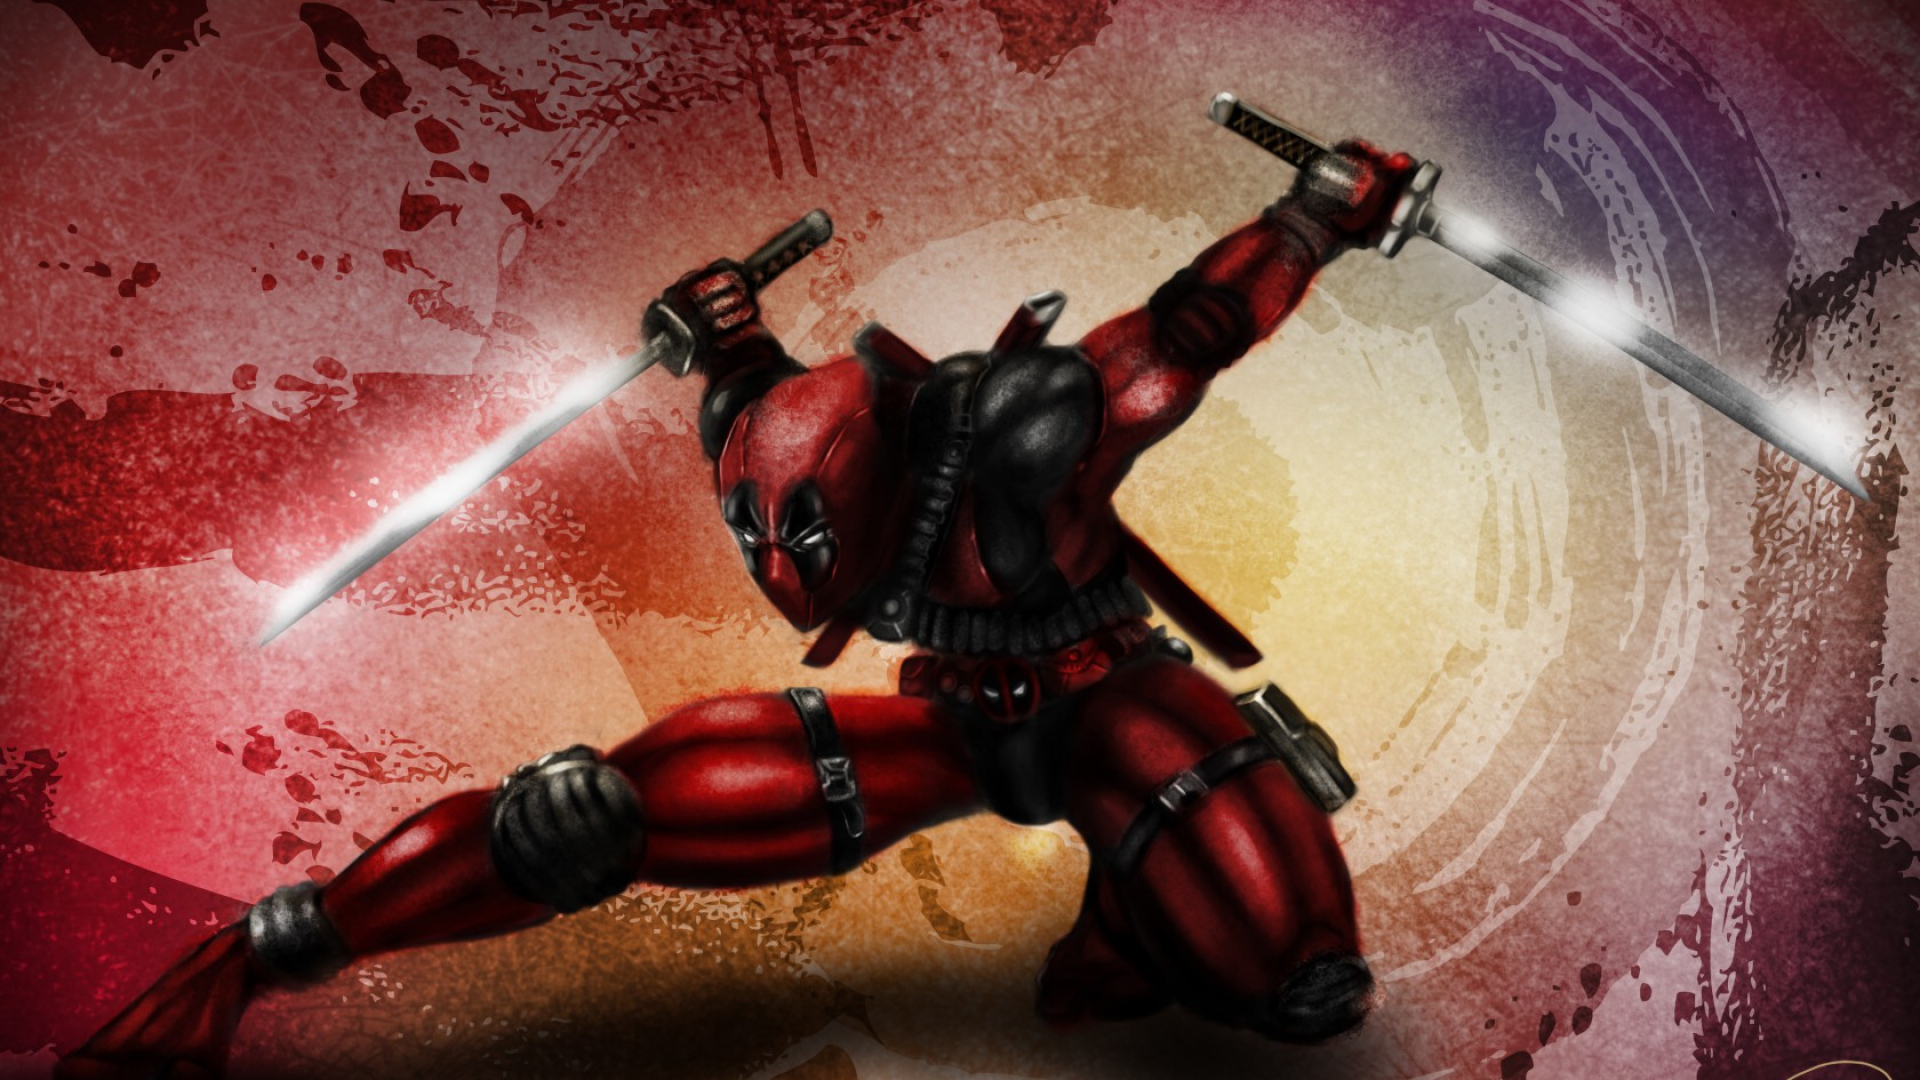 Deadpool High moon studios Mask Gun Red suit Full HD 1080p HD 1920x1080